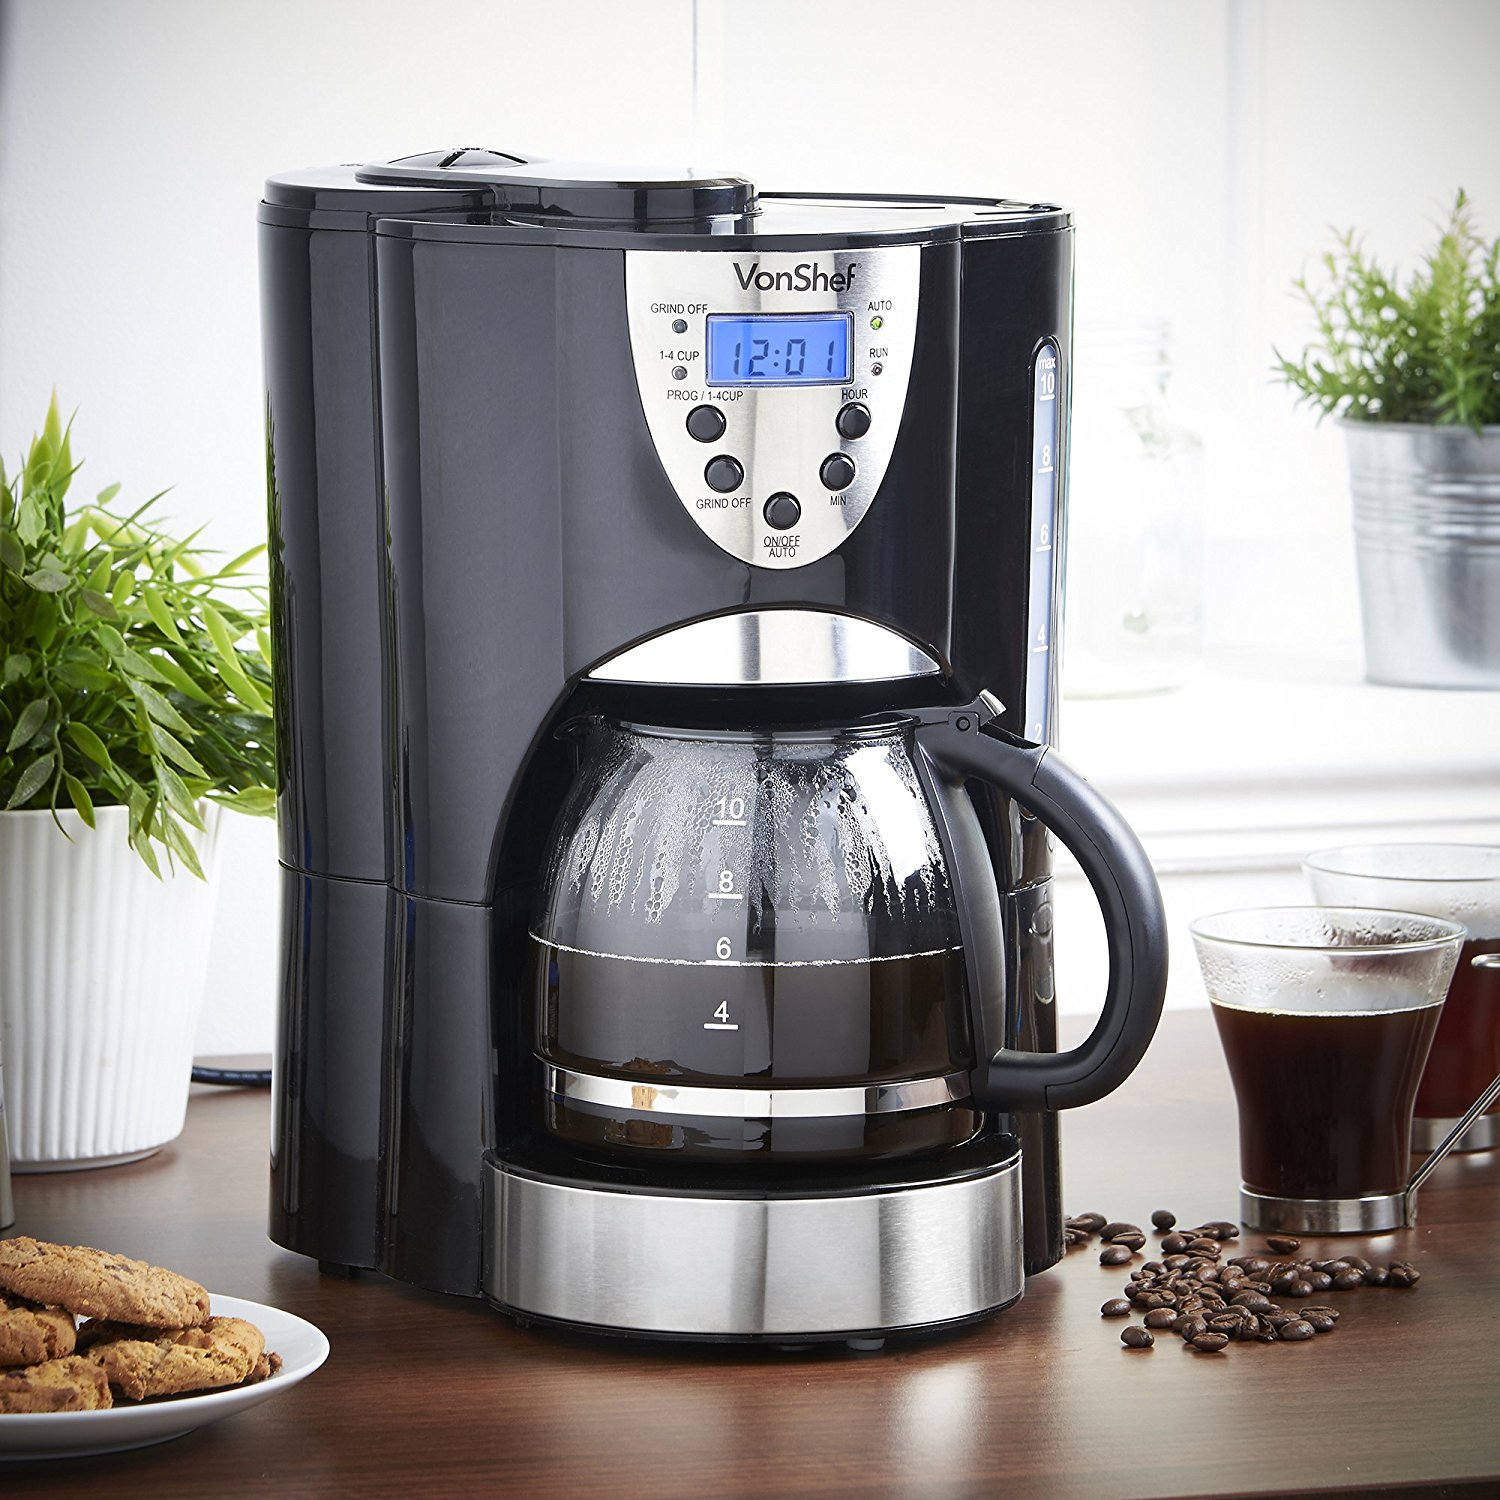 Coffee Maker With Grinder Reddit : VonShef 220-Volt Digital Programmable Coffee Maker with Built-in Grinder